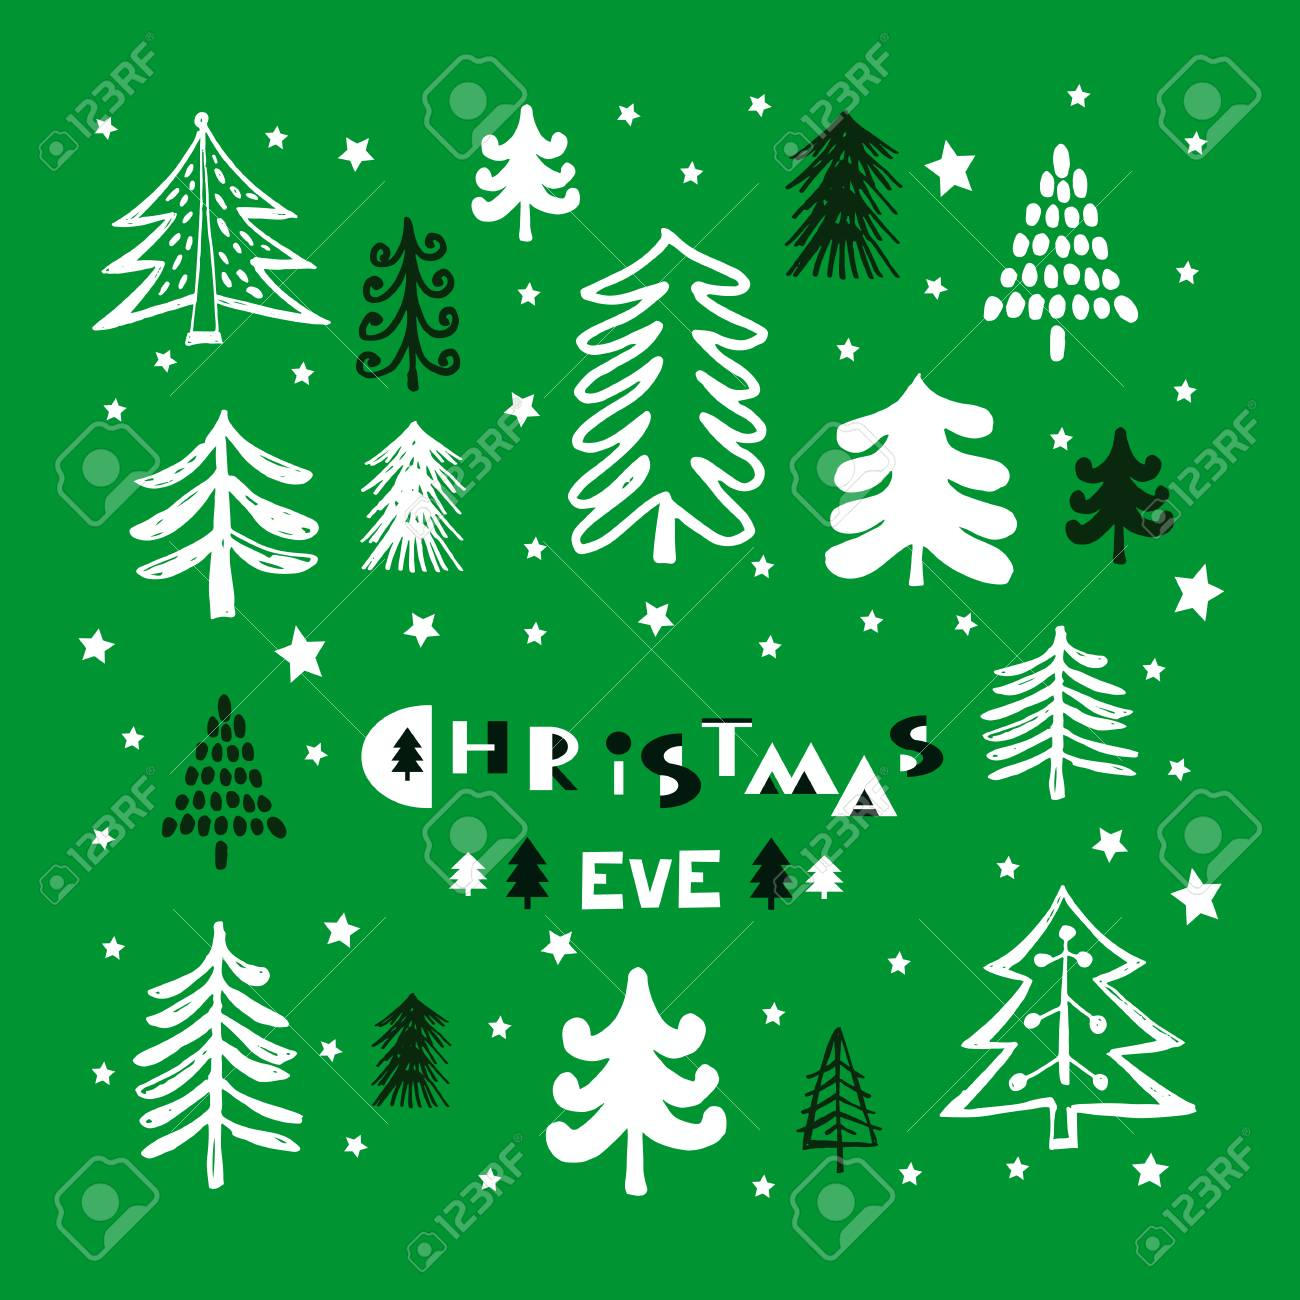 Christmas Eve Template Poster Greeting Card Invitation With